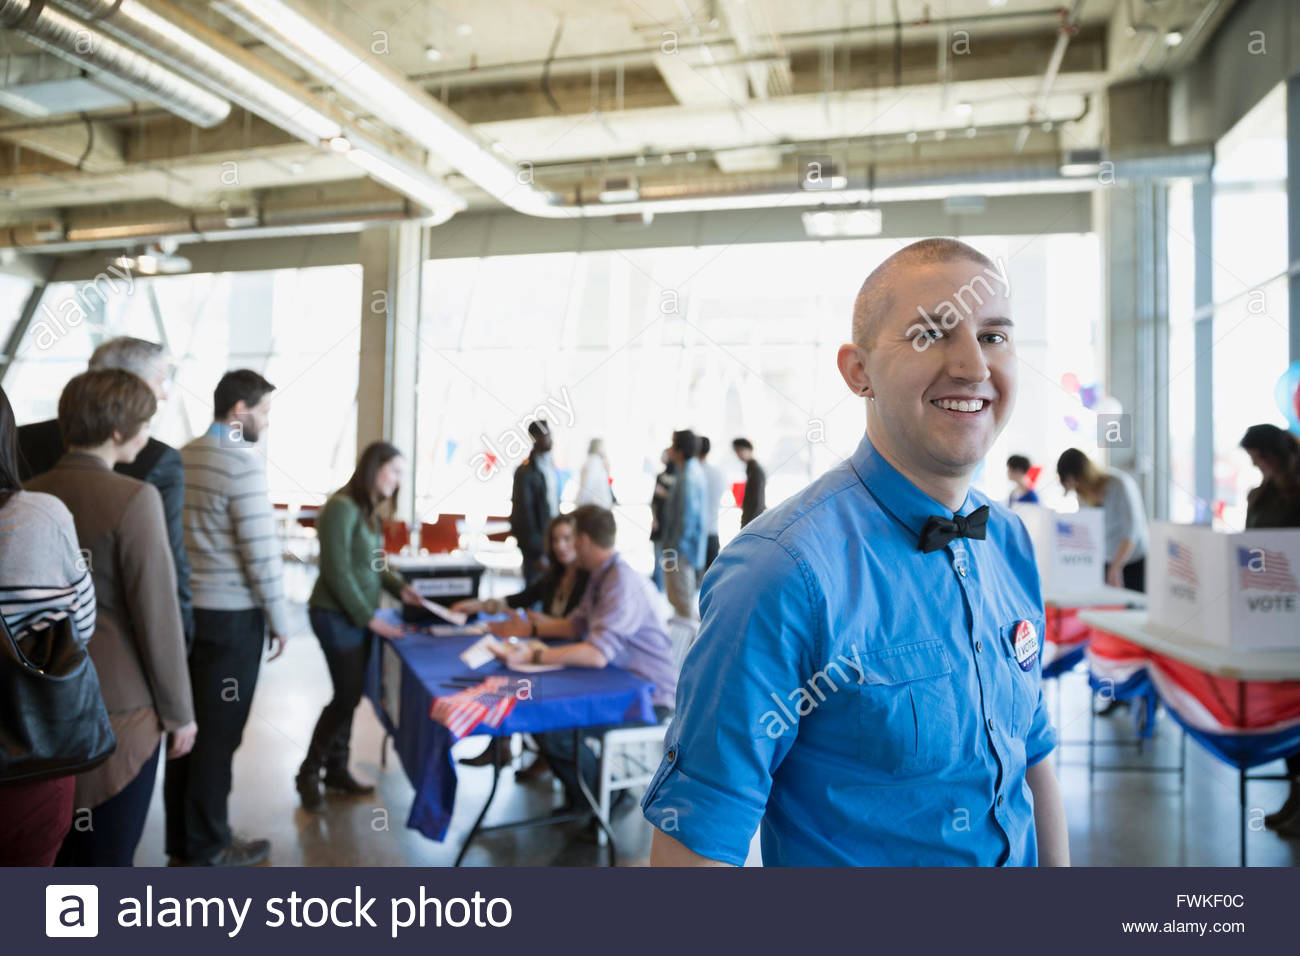 Portrait smiling man bow tie voter polling place - Stock Image